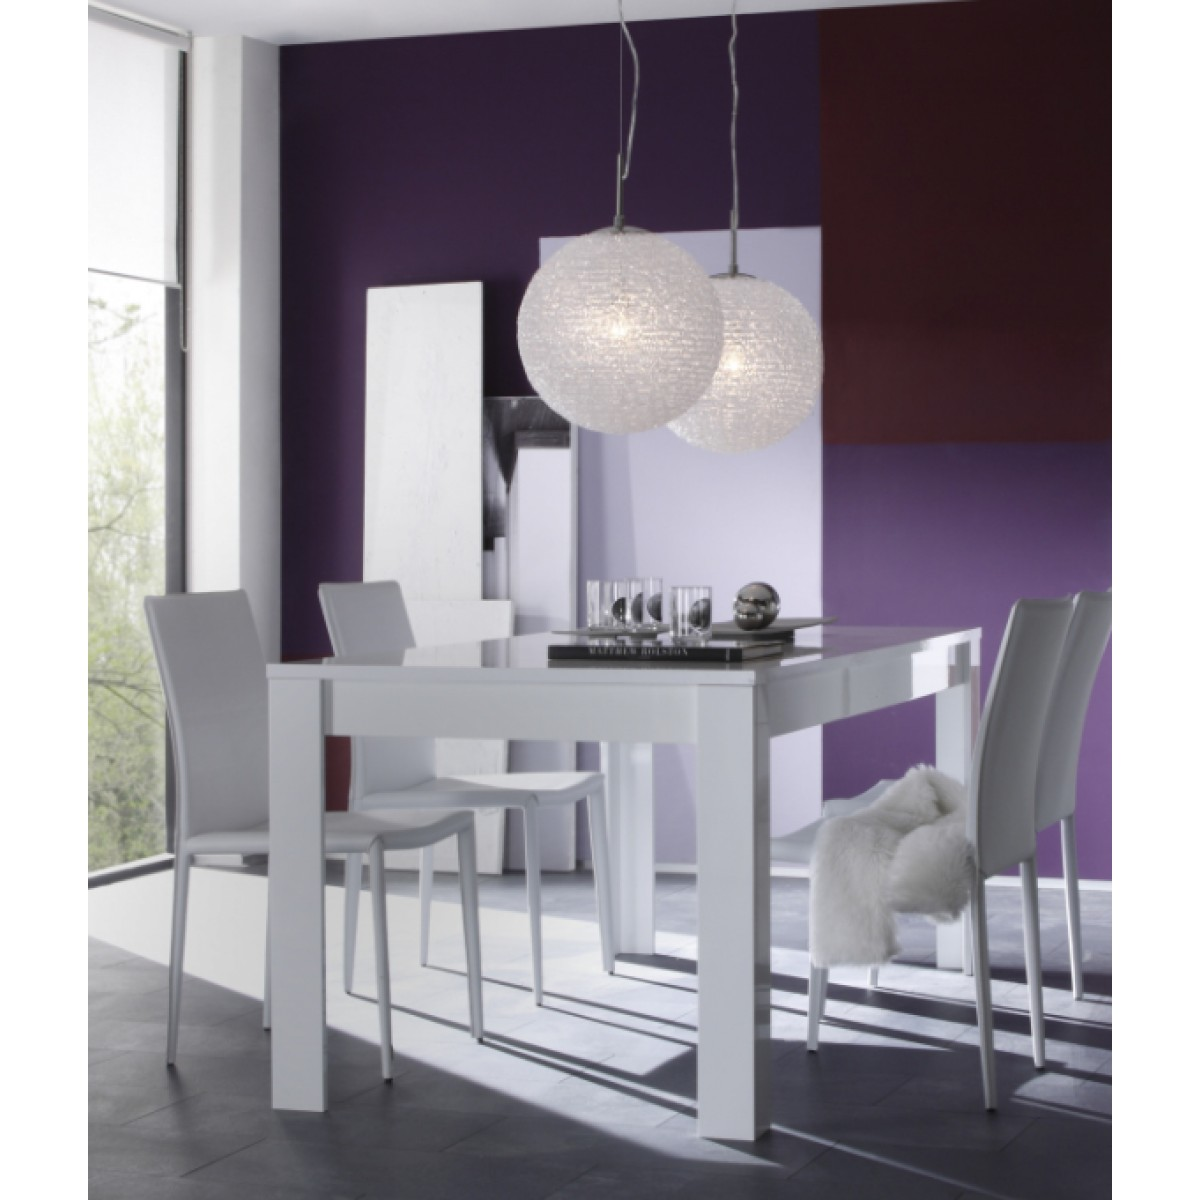 Salle manger blanc laqu buffet 4 portes meuble haut for Copie design mobili